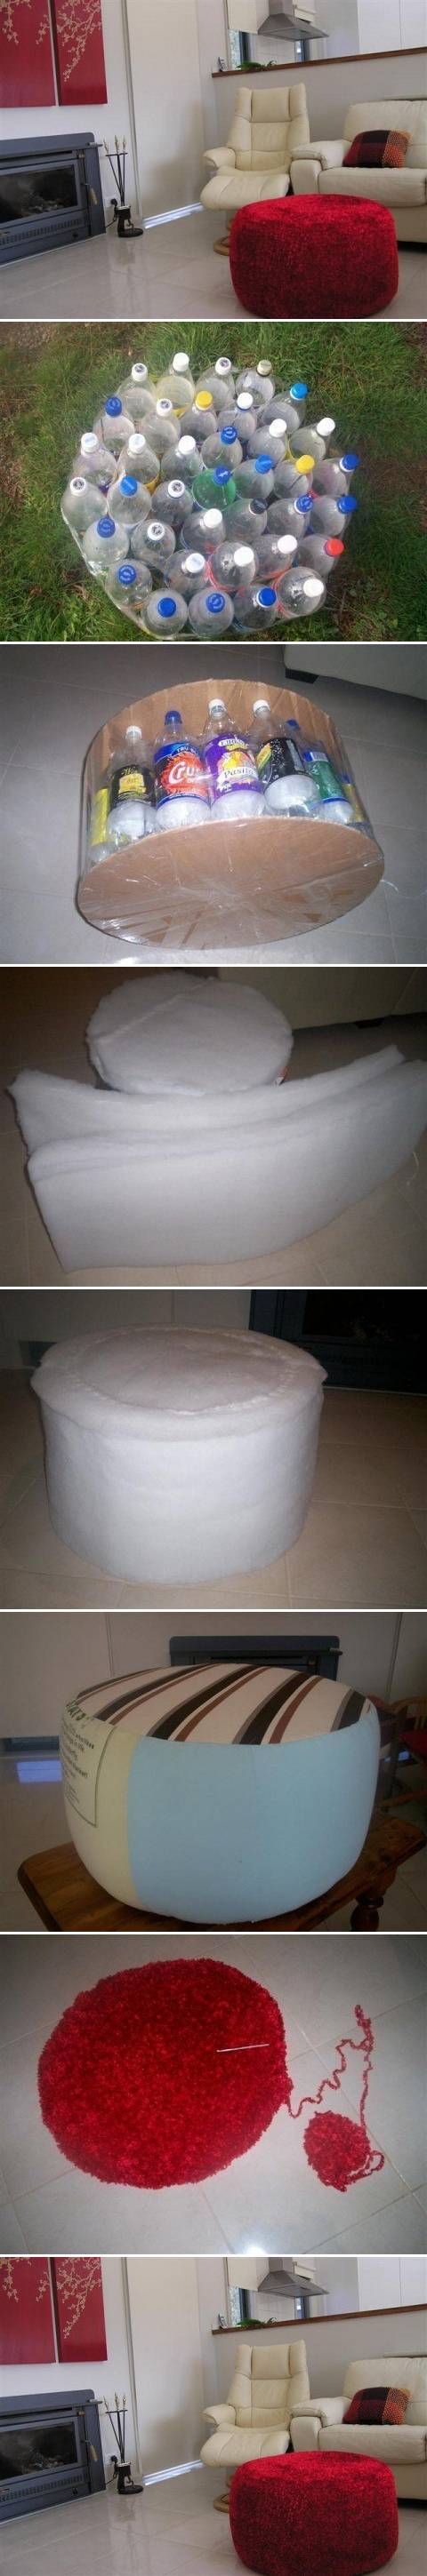 How to make beautiful ottoman with Plastic water Bottles step by step DIY tutorial instructions